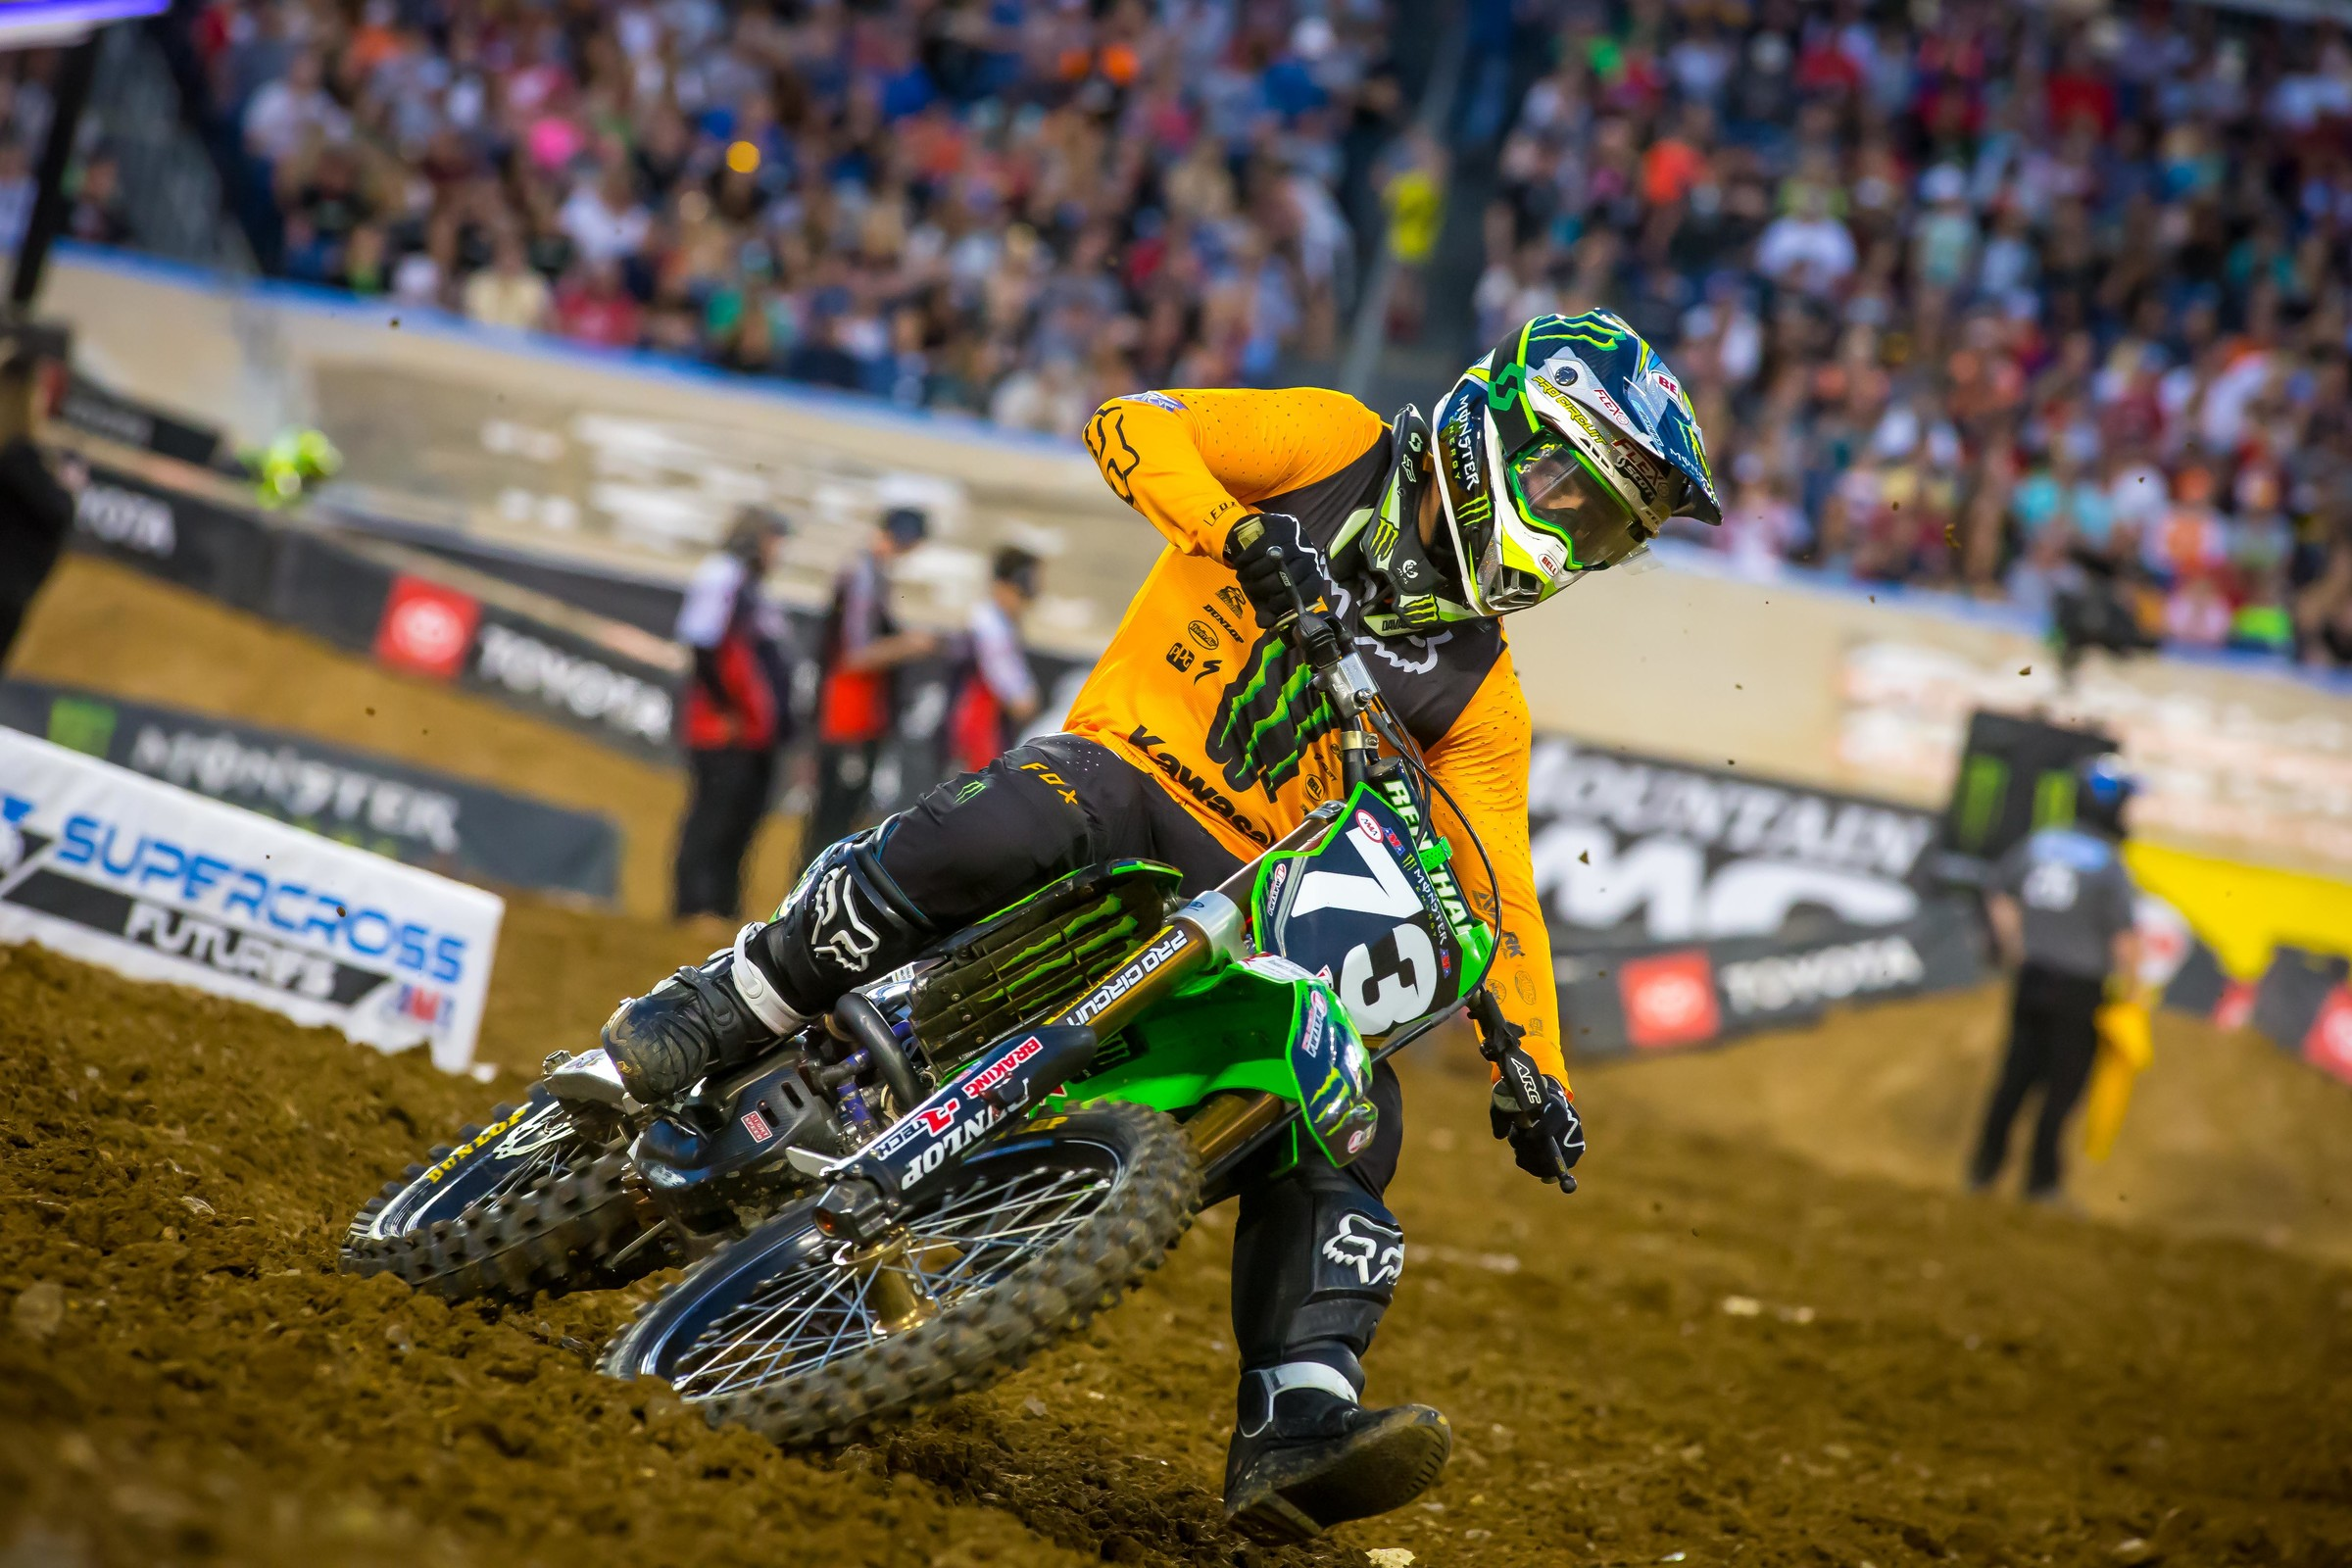 Martin Davalos took advantage of all the chaos to grab the win.